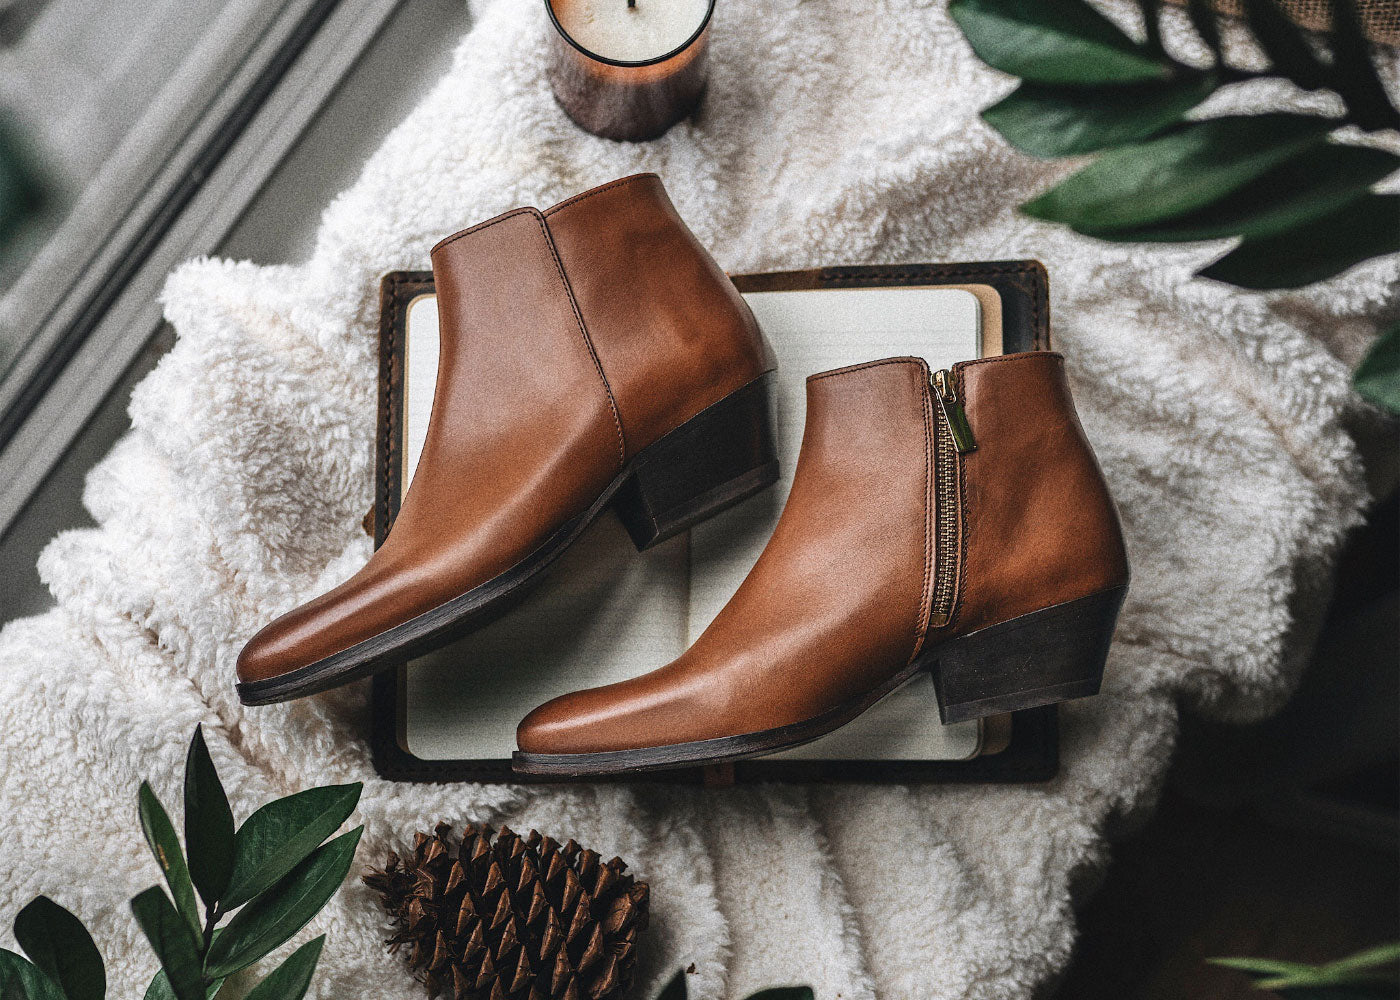 The Best Women's Boots: The Downtown Bootie